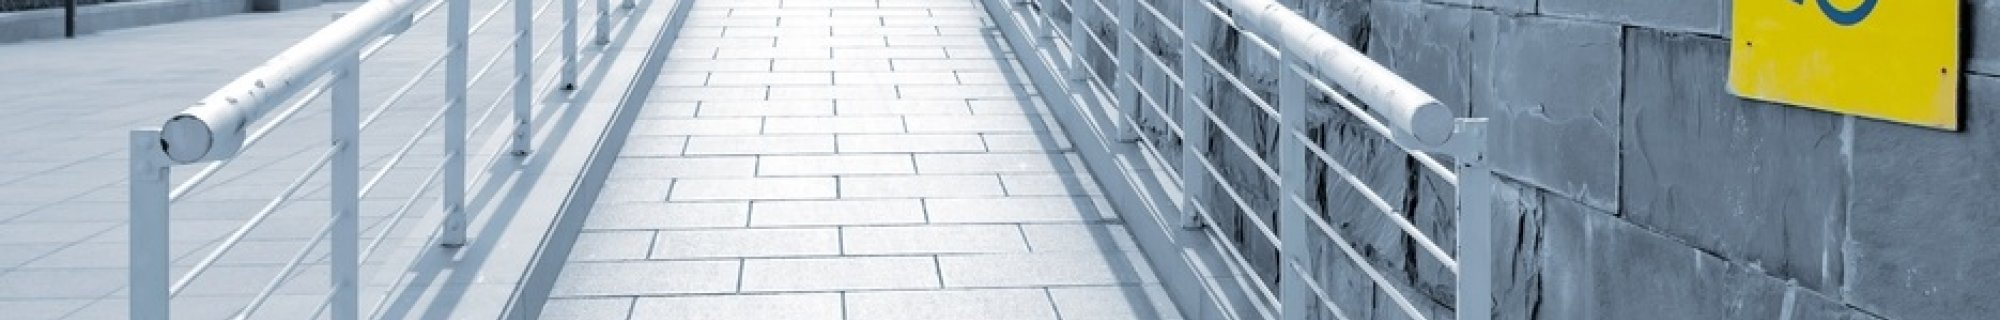 Wheelchair access ramp with signage